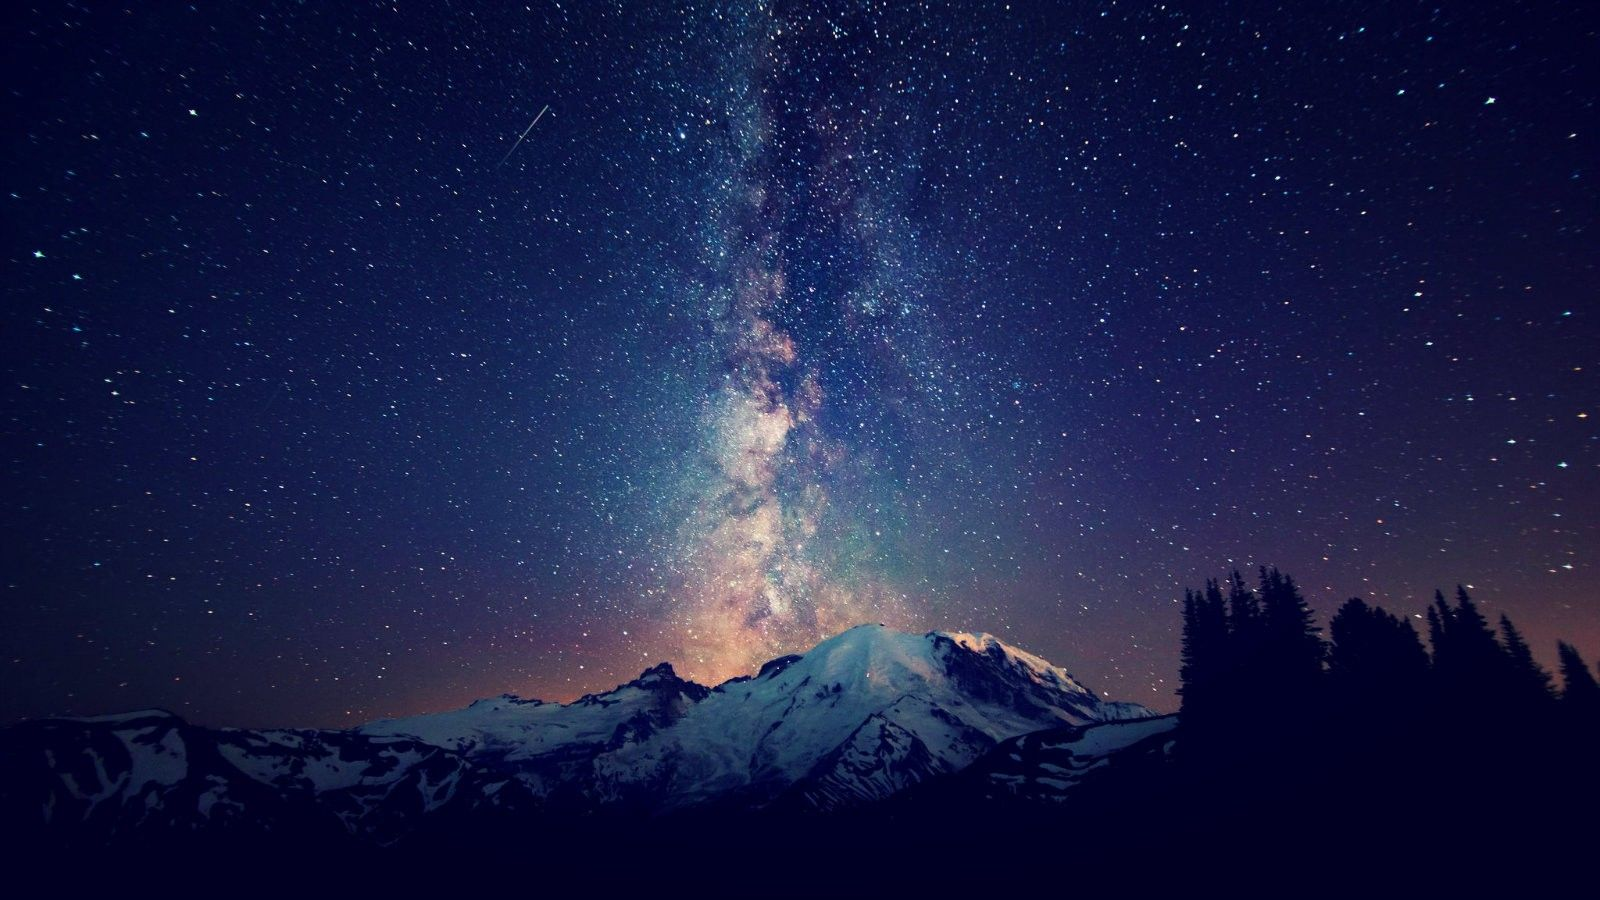 For All Of The Things That Leave You Stunned R Breathless Sky Mountain Night Sky Wallpaper Rainier Wallpaper starry sky milky way mountain